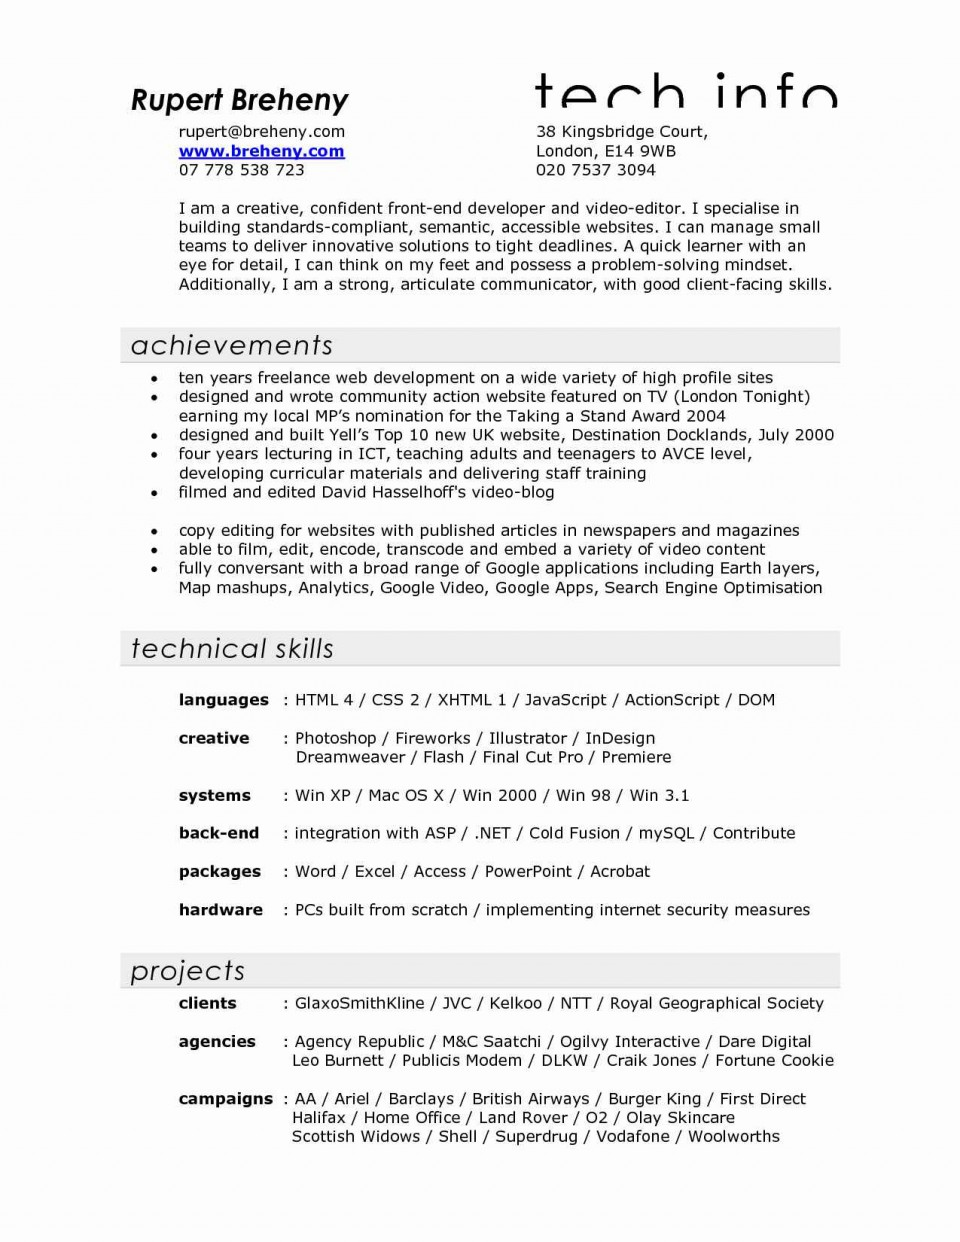 006 Essay Example Film Director Resume Template Inspirational Gre Awa Analytical Writing Solutions To The Real Topics Pdf Free Downlo Book Books Download Test Prep Incredible 960